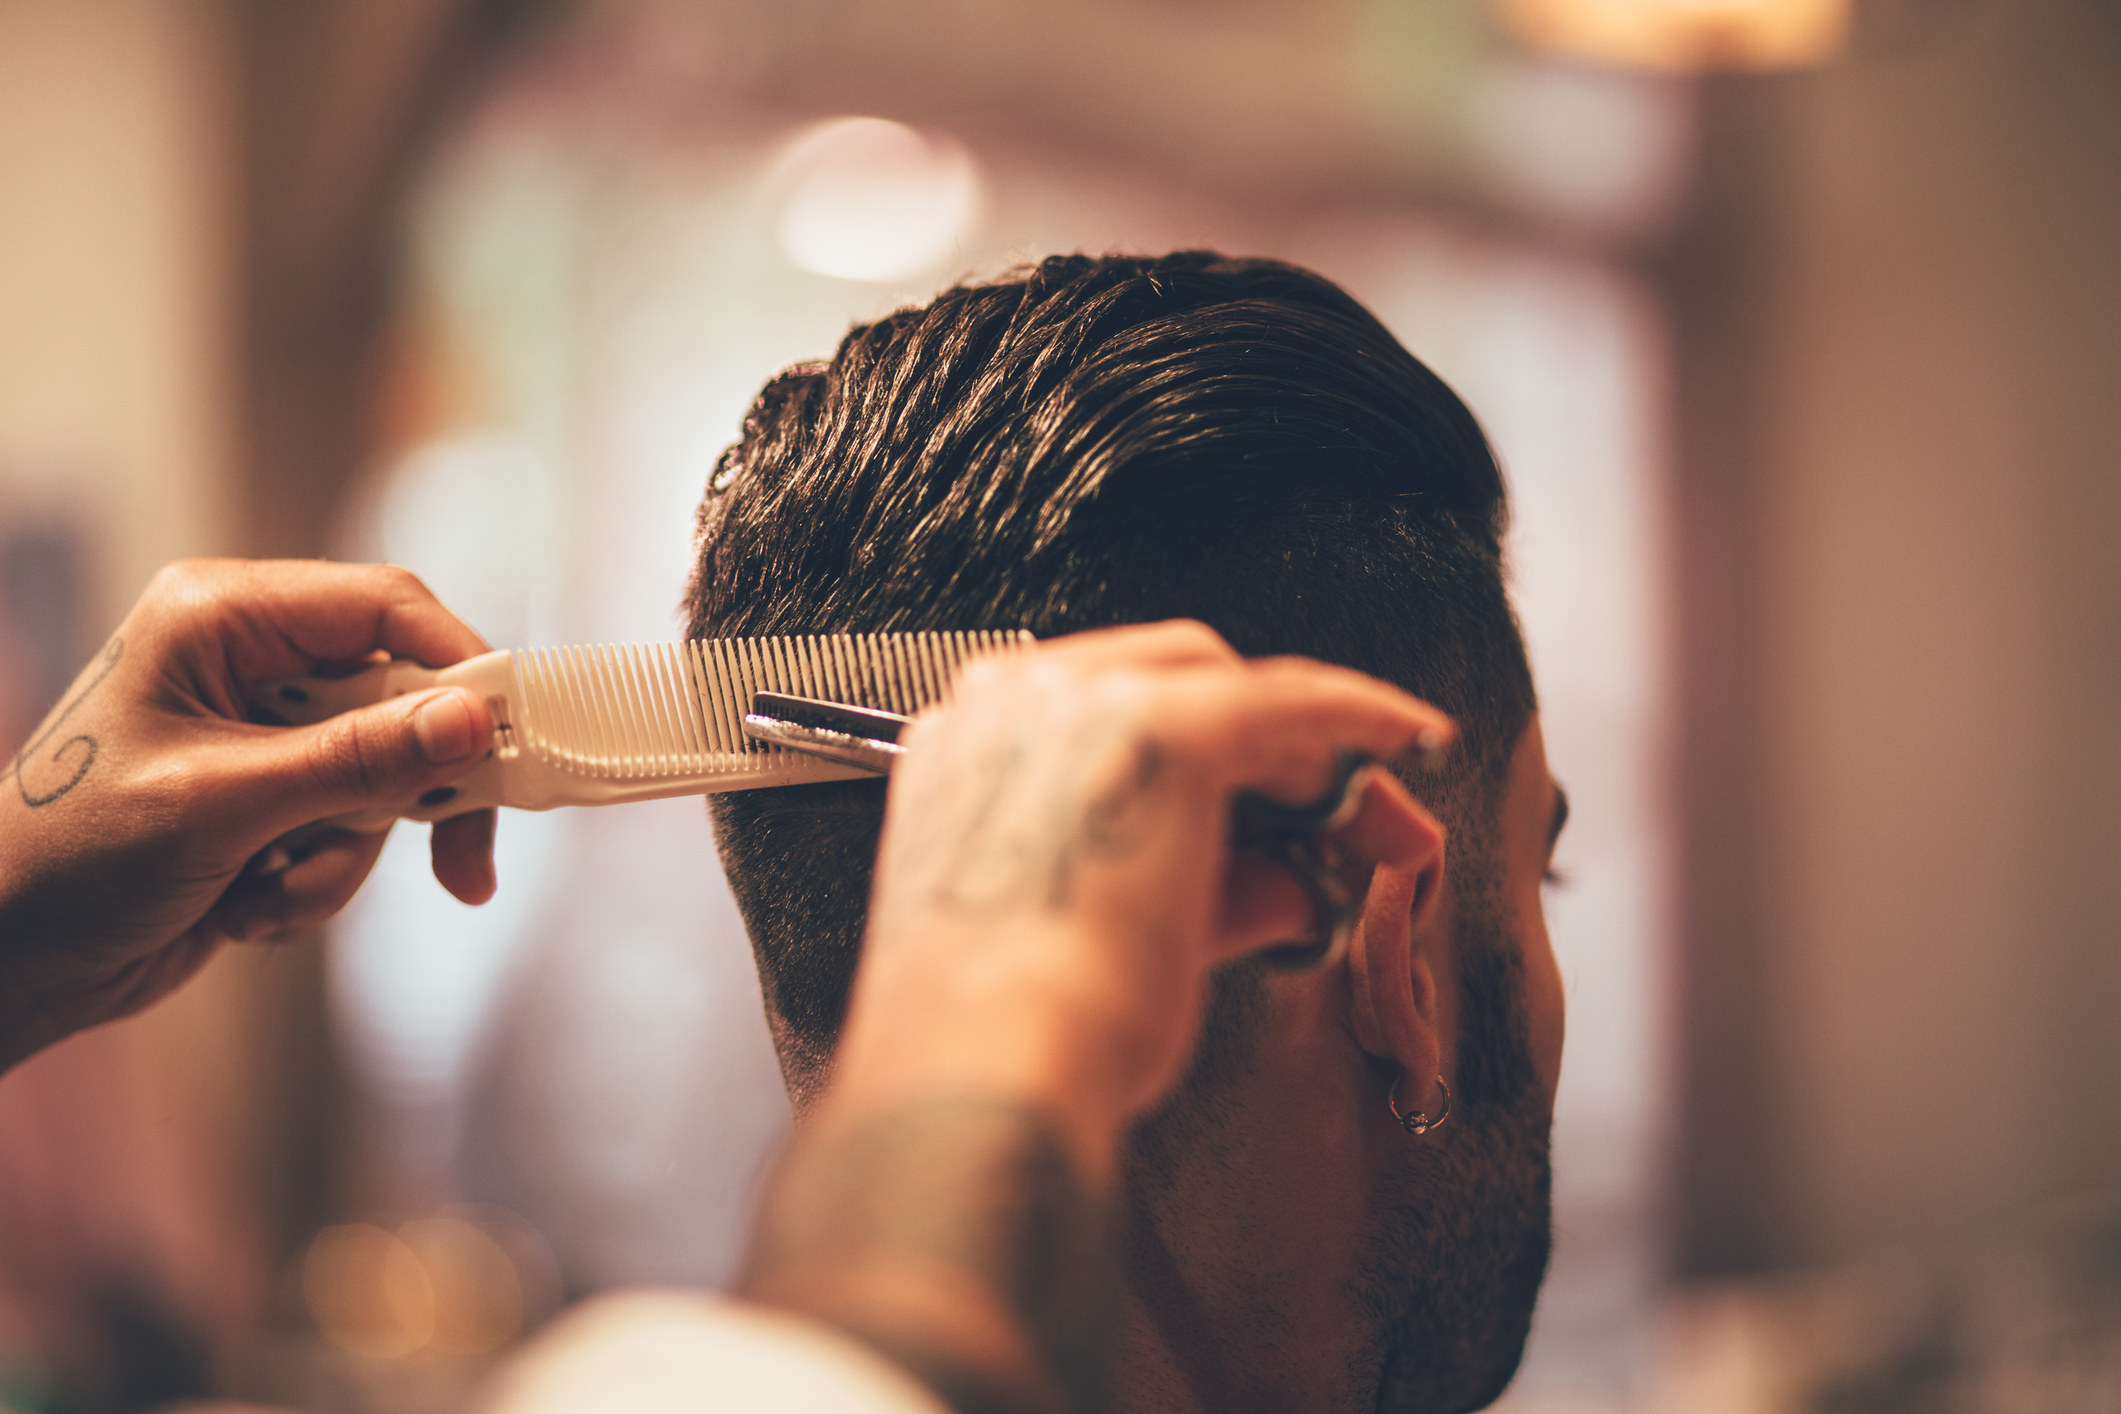 Close-up of barber's tattooed hands holding comb and scissors and giving man haircut